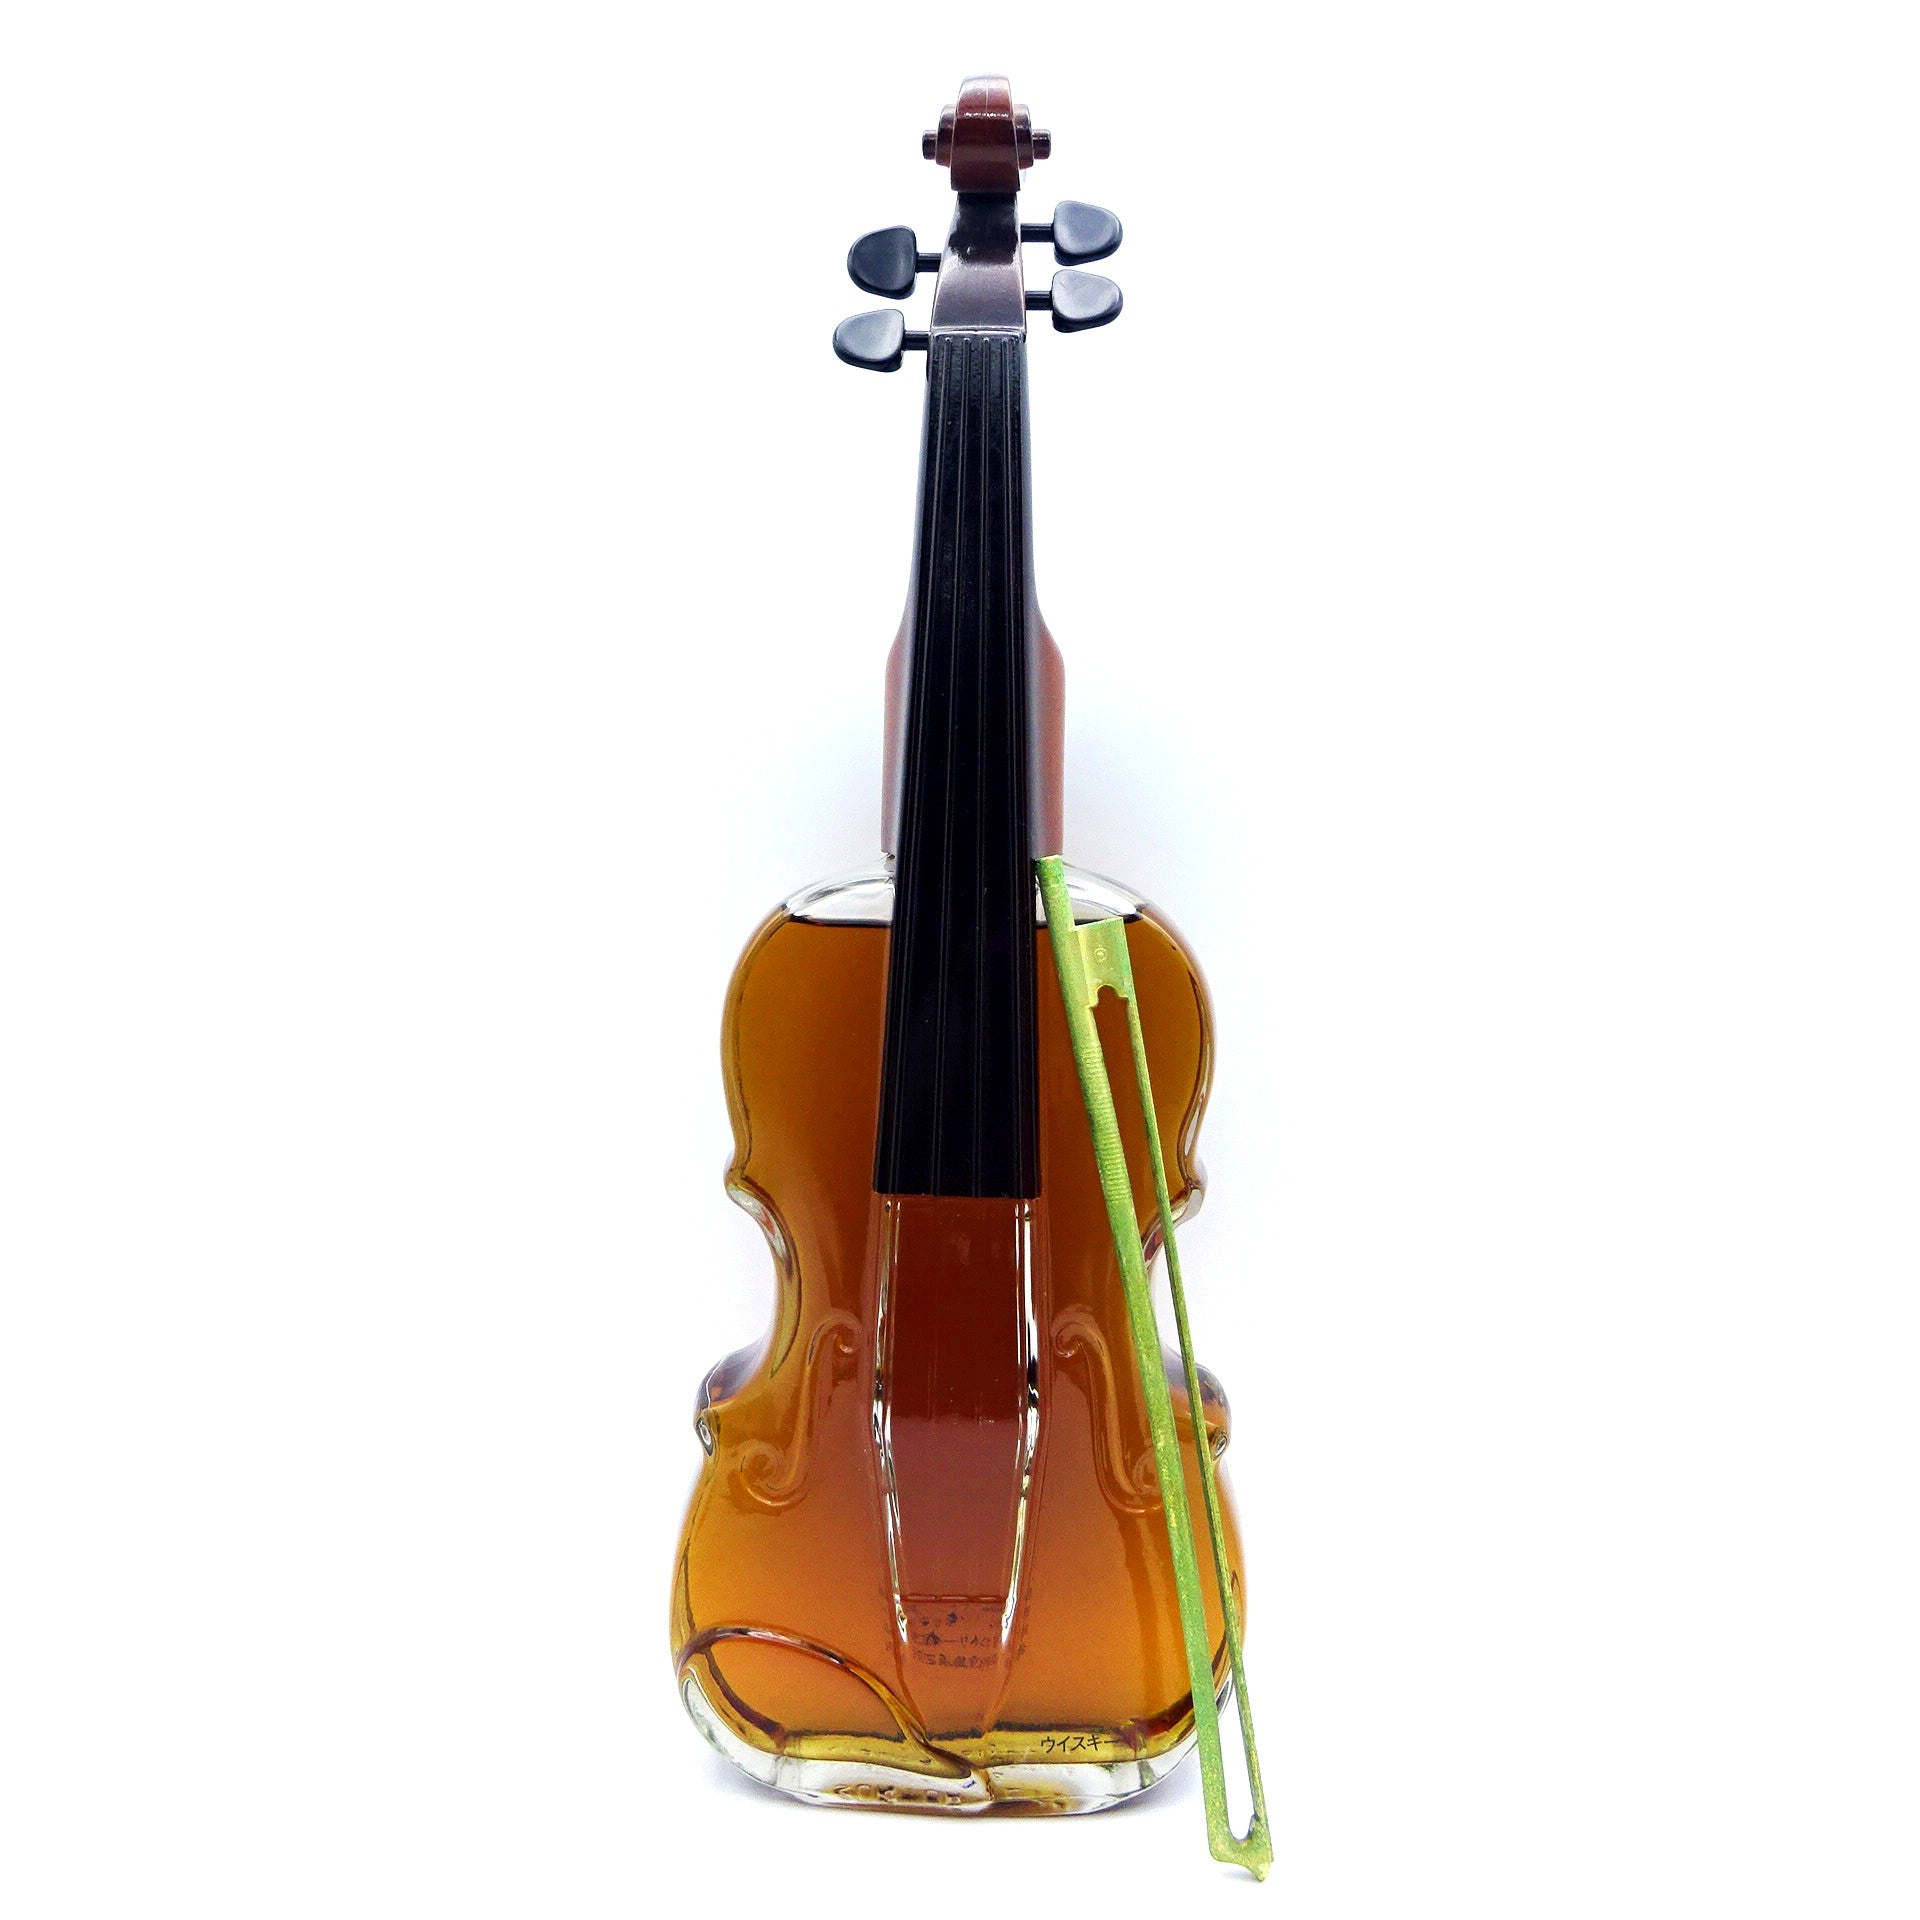 Suntory Royal Whisky Violin Bottle-Whisky-Cool Rare Japan